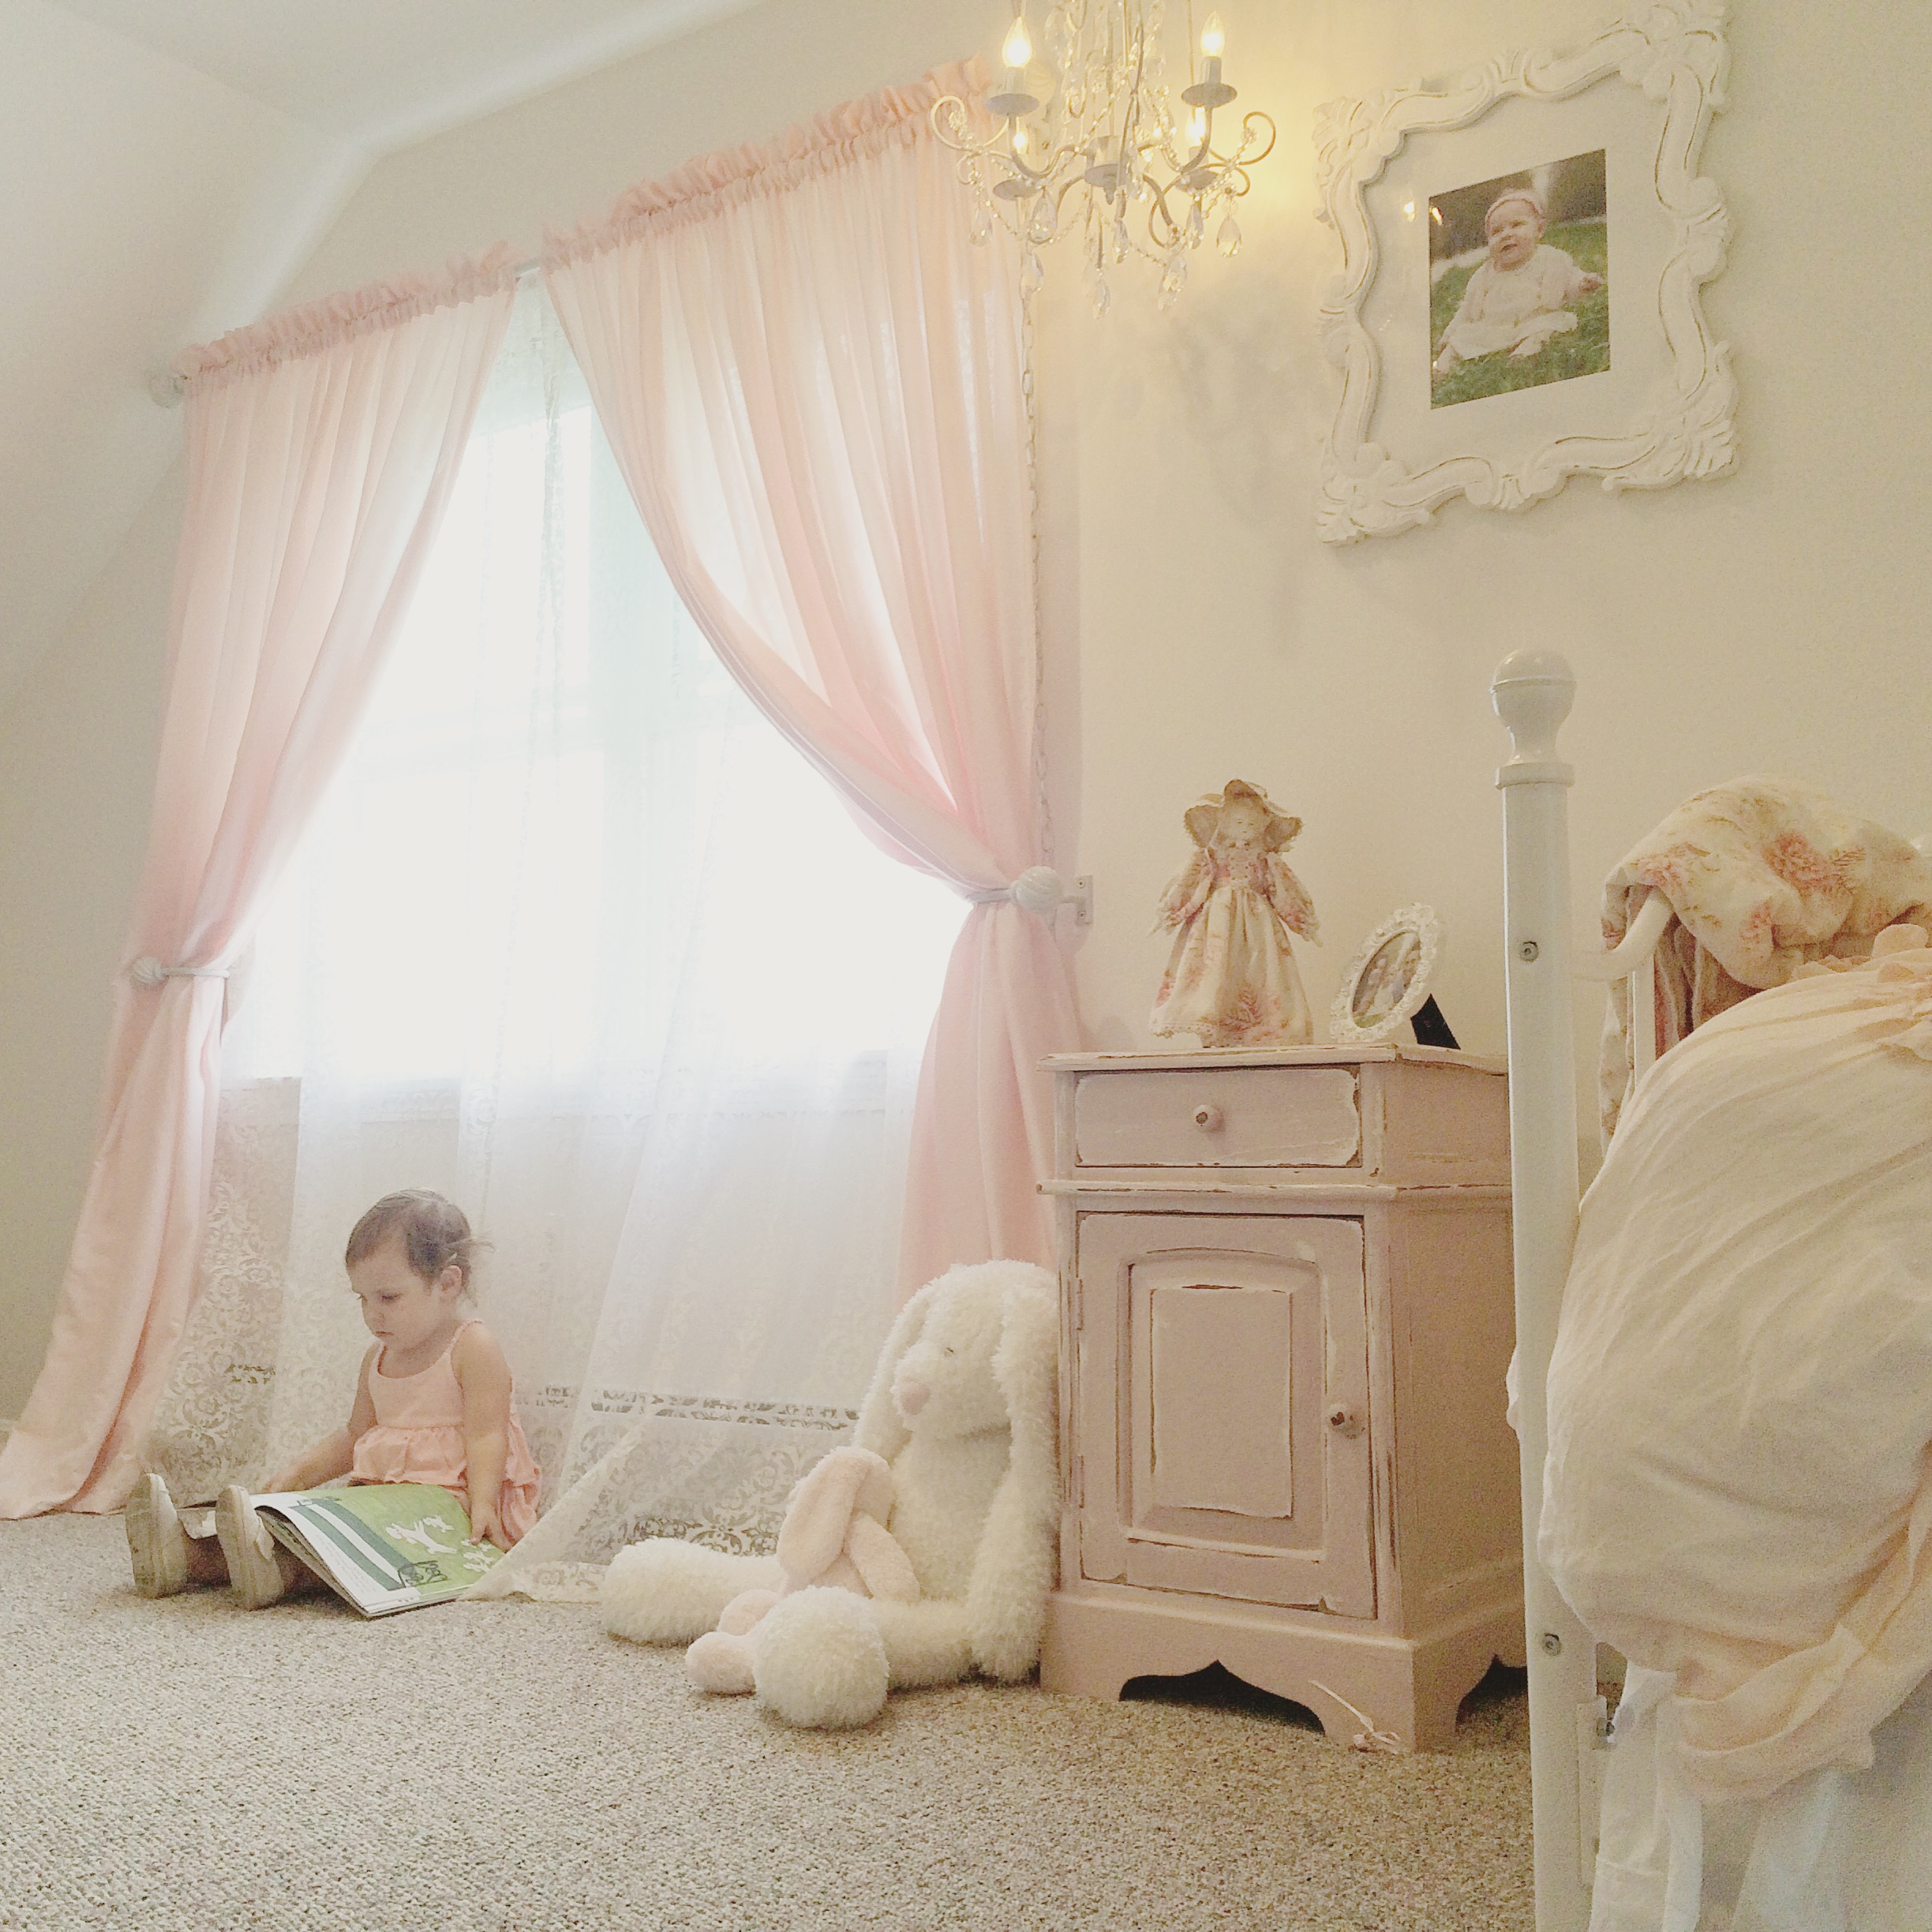 25 Classy And Cheerful Pink Room Decor Ideas: Ryan Cathleen's Elegant DIY Pink And Cream Toddler Room